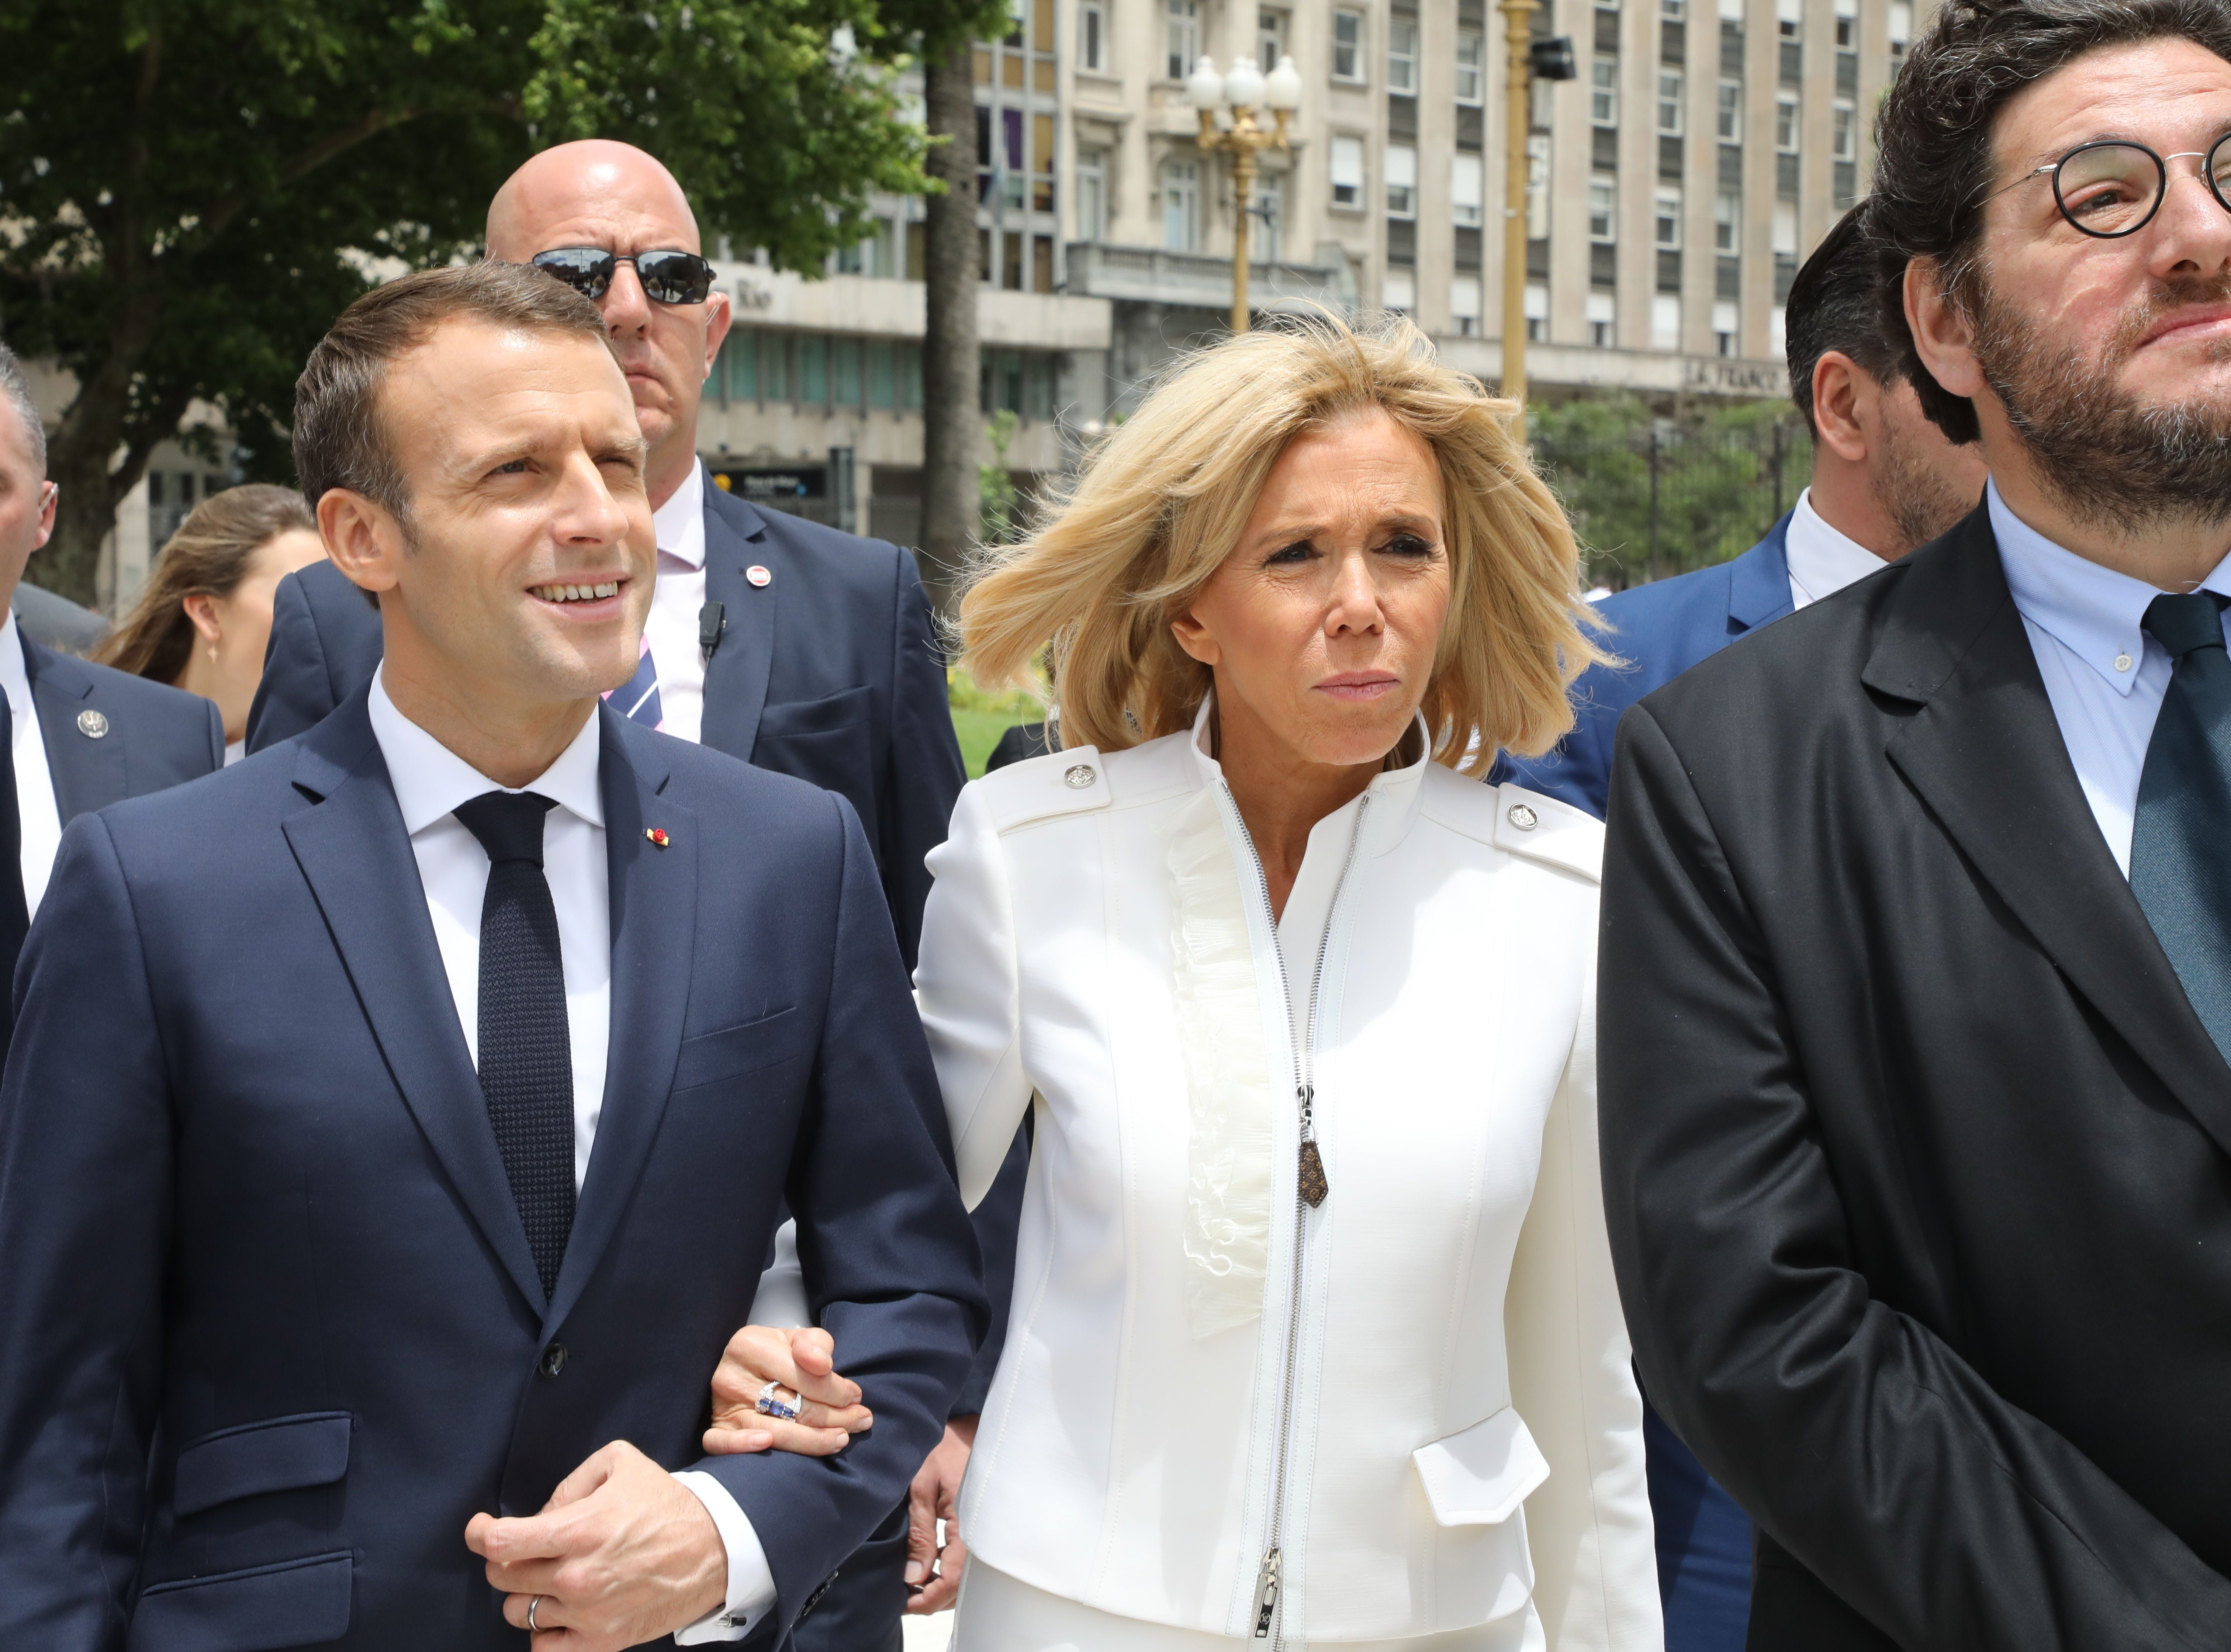 """France's President Emmanuel Macron and France's First Lady Brigitte Macron visit Plaza de Mayo in Buenos Aires on November 29, 2018. - Macron arrived on the eve for a two-day G20 summit beginning on November 30 likely to be dominated by simmering international tensions over trade. In an interview with Argentine daily La Nacion, he warned against the risk of """"a destructive trade war for all"""" emanating from the G20 discussions. (Photo by Ludovic MARIN / POOL / AFP)        (Photo credit should read LUDOVIC MARIN / POOL/AFP/Getty Images)"""